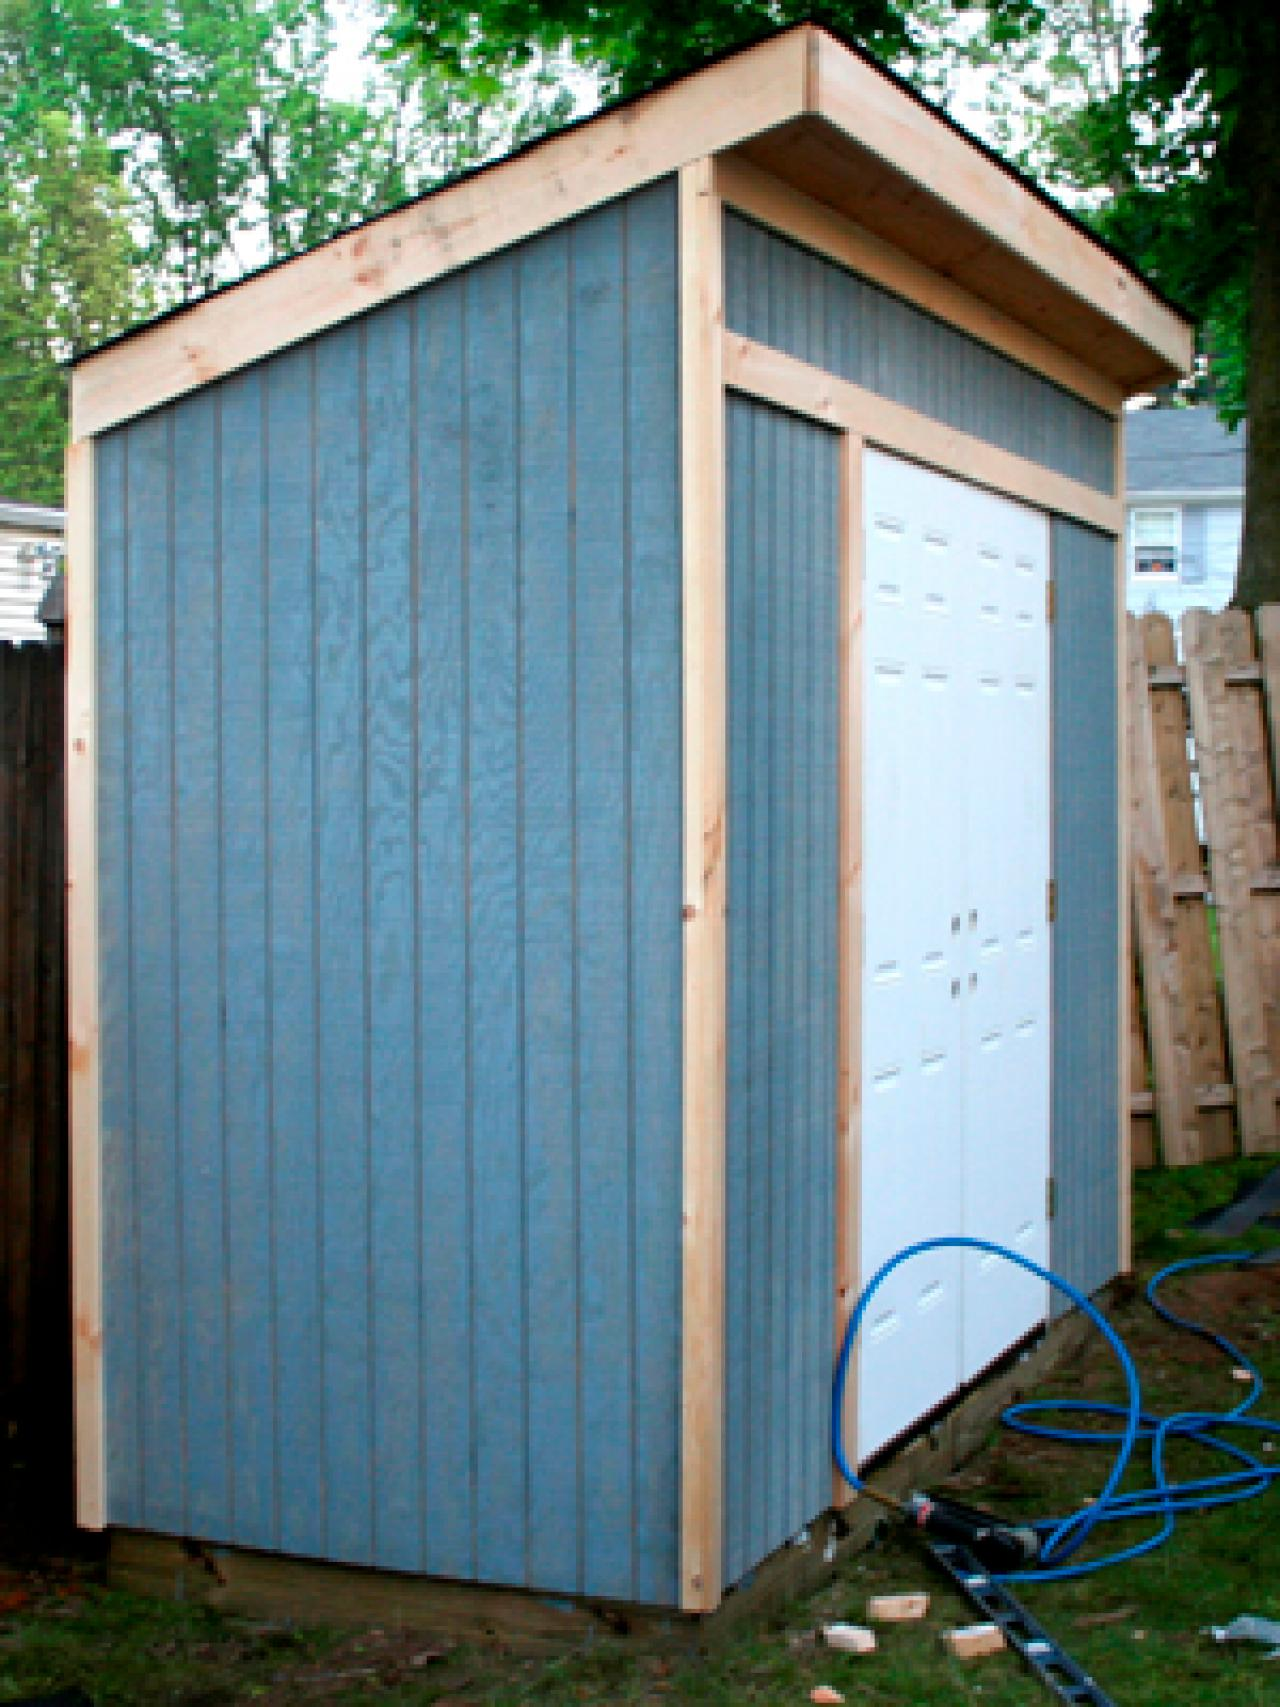 How to build a storage shed for garden tools hgtv for Outdoor tool shed